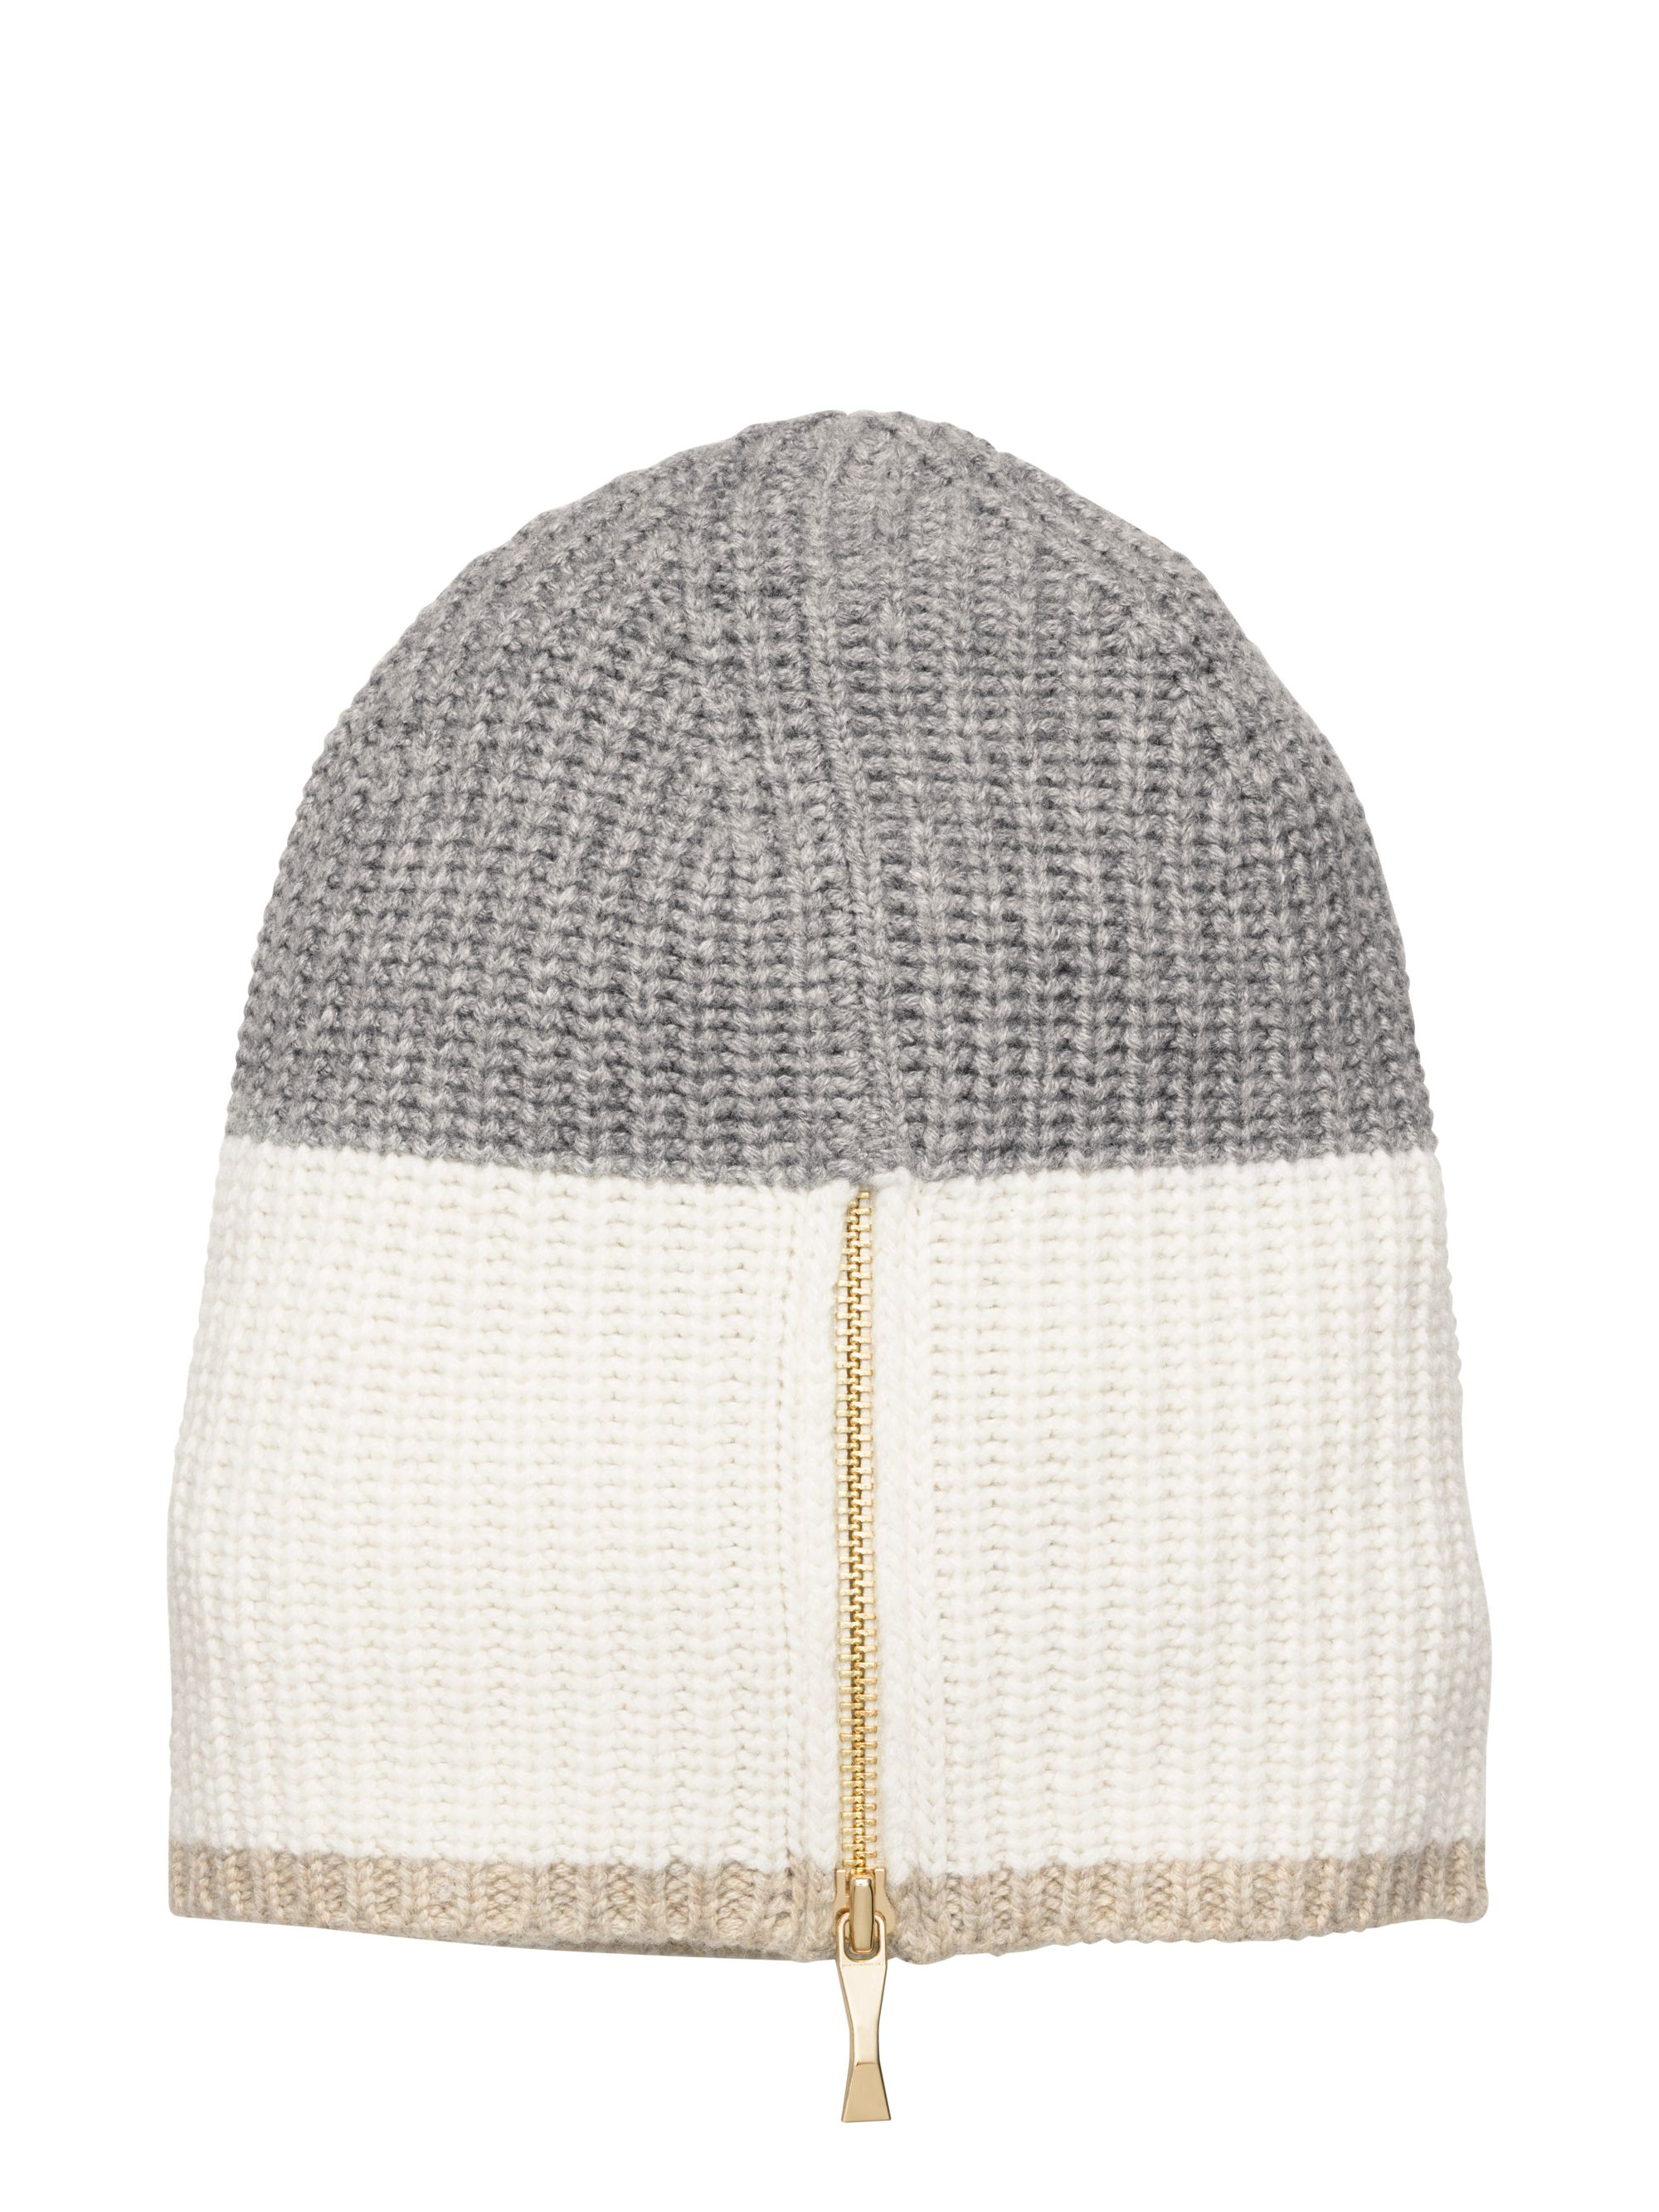 3504b9256eb86 Kate Spade Zip Up Beanie in Natural - Lyst